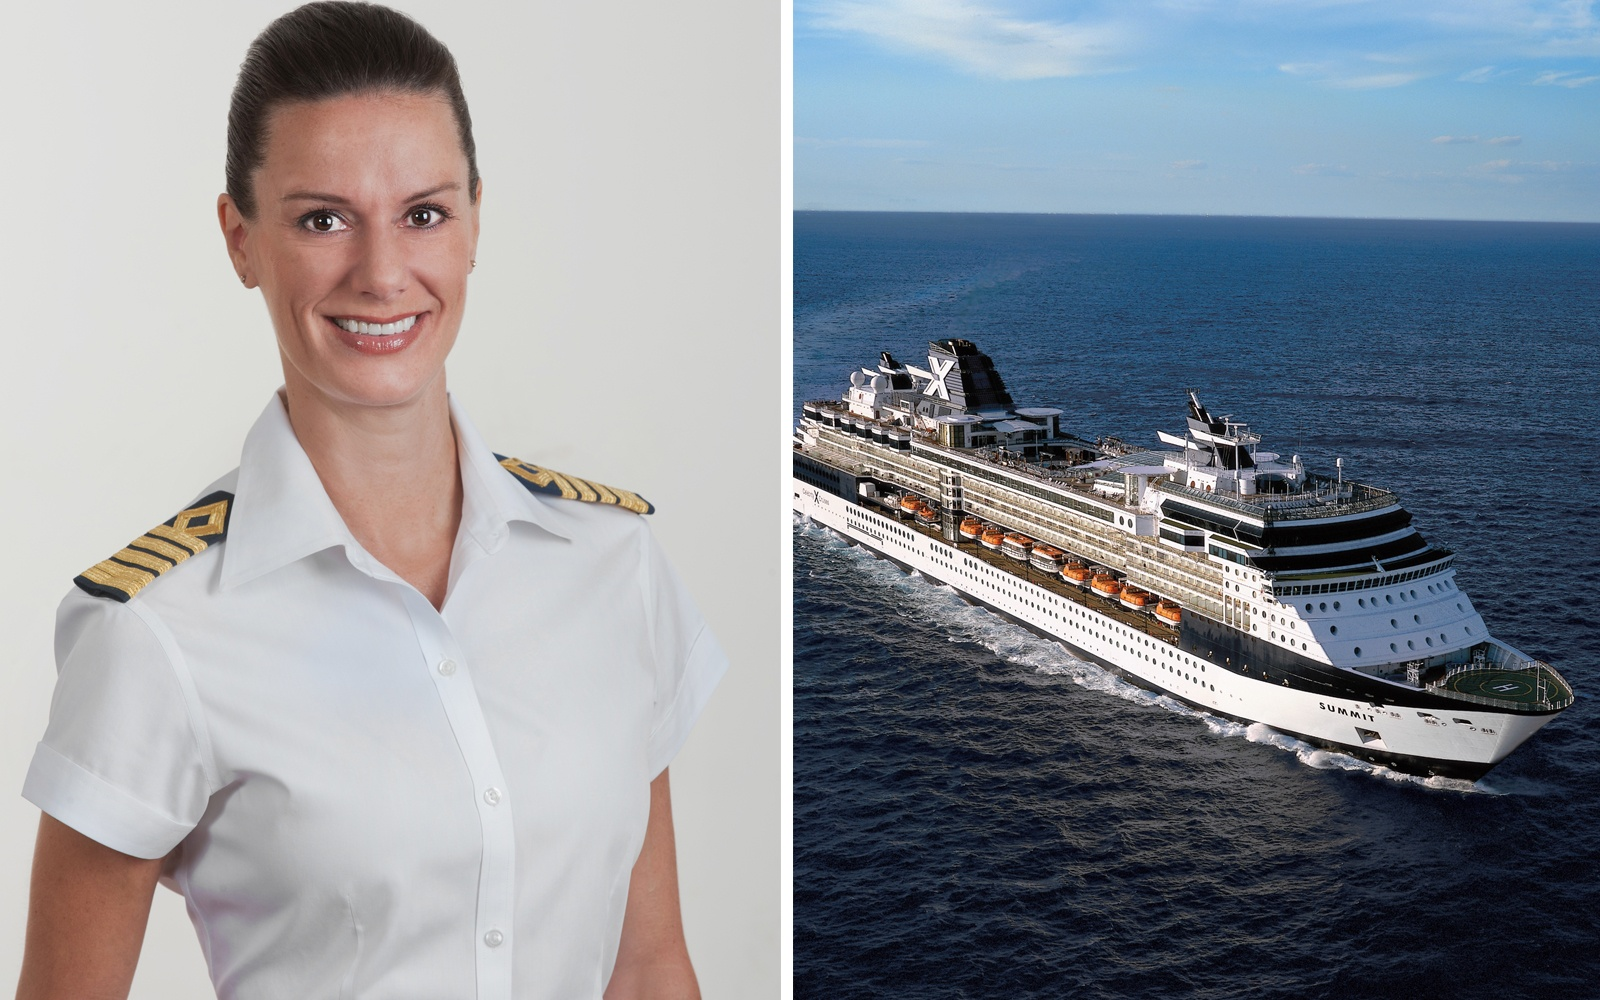 Meet The First American Female Captain Celebrity Cruisesu0026#39; Kate McCue | Travel + Leisure